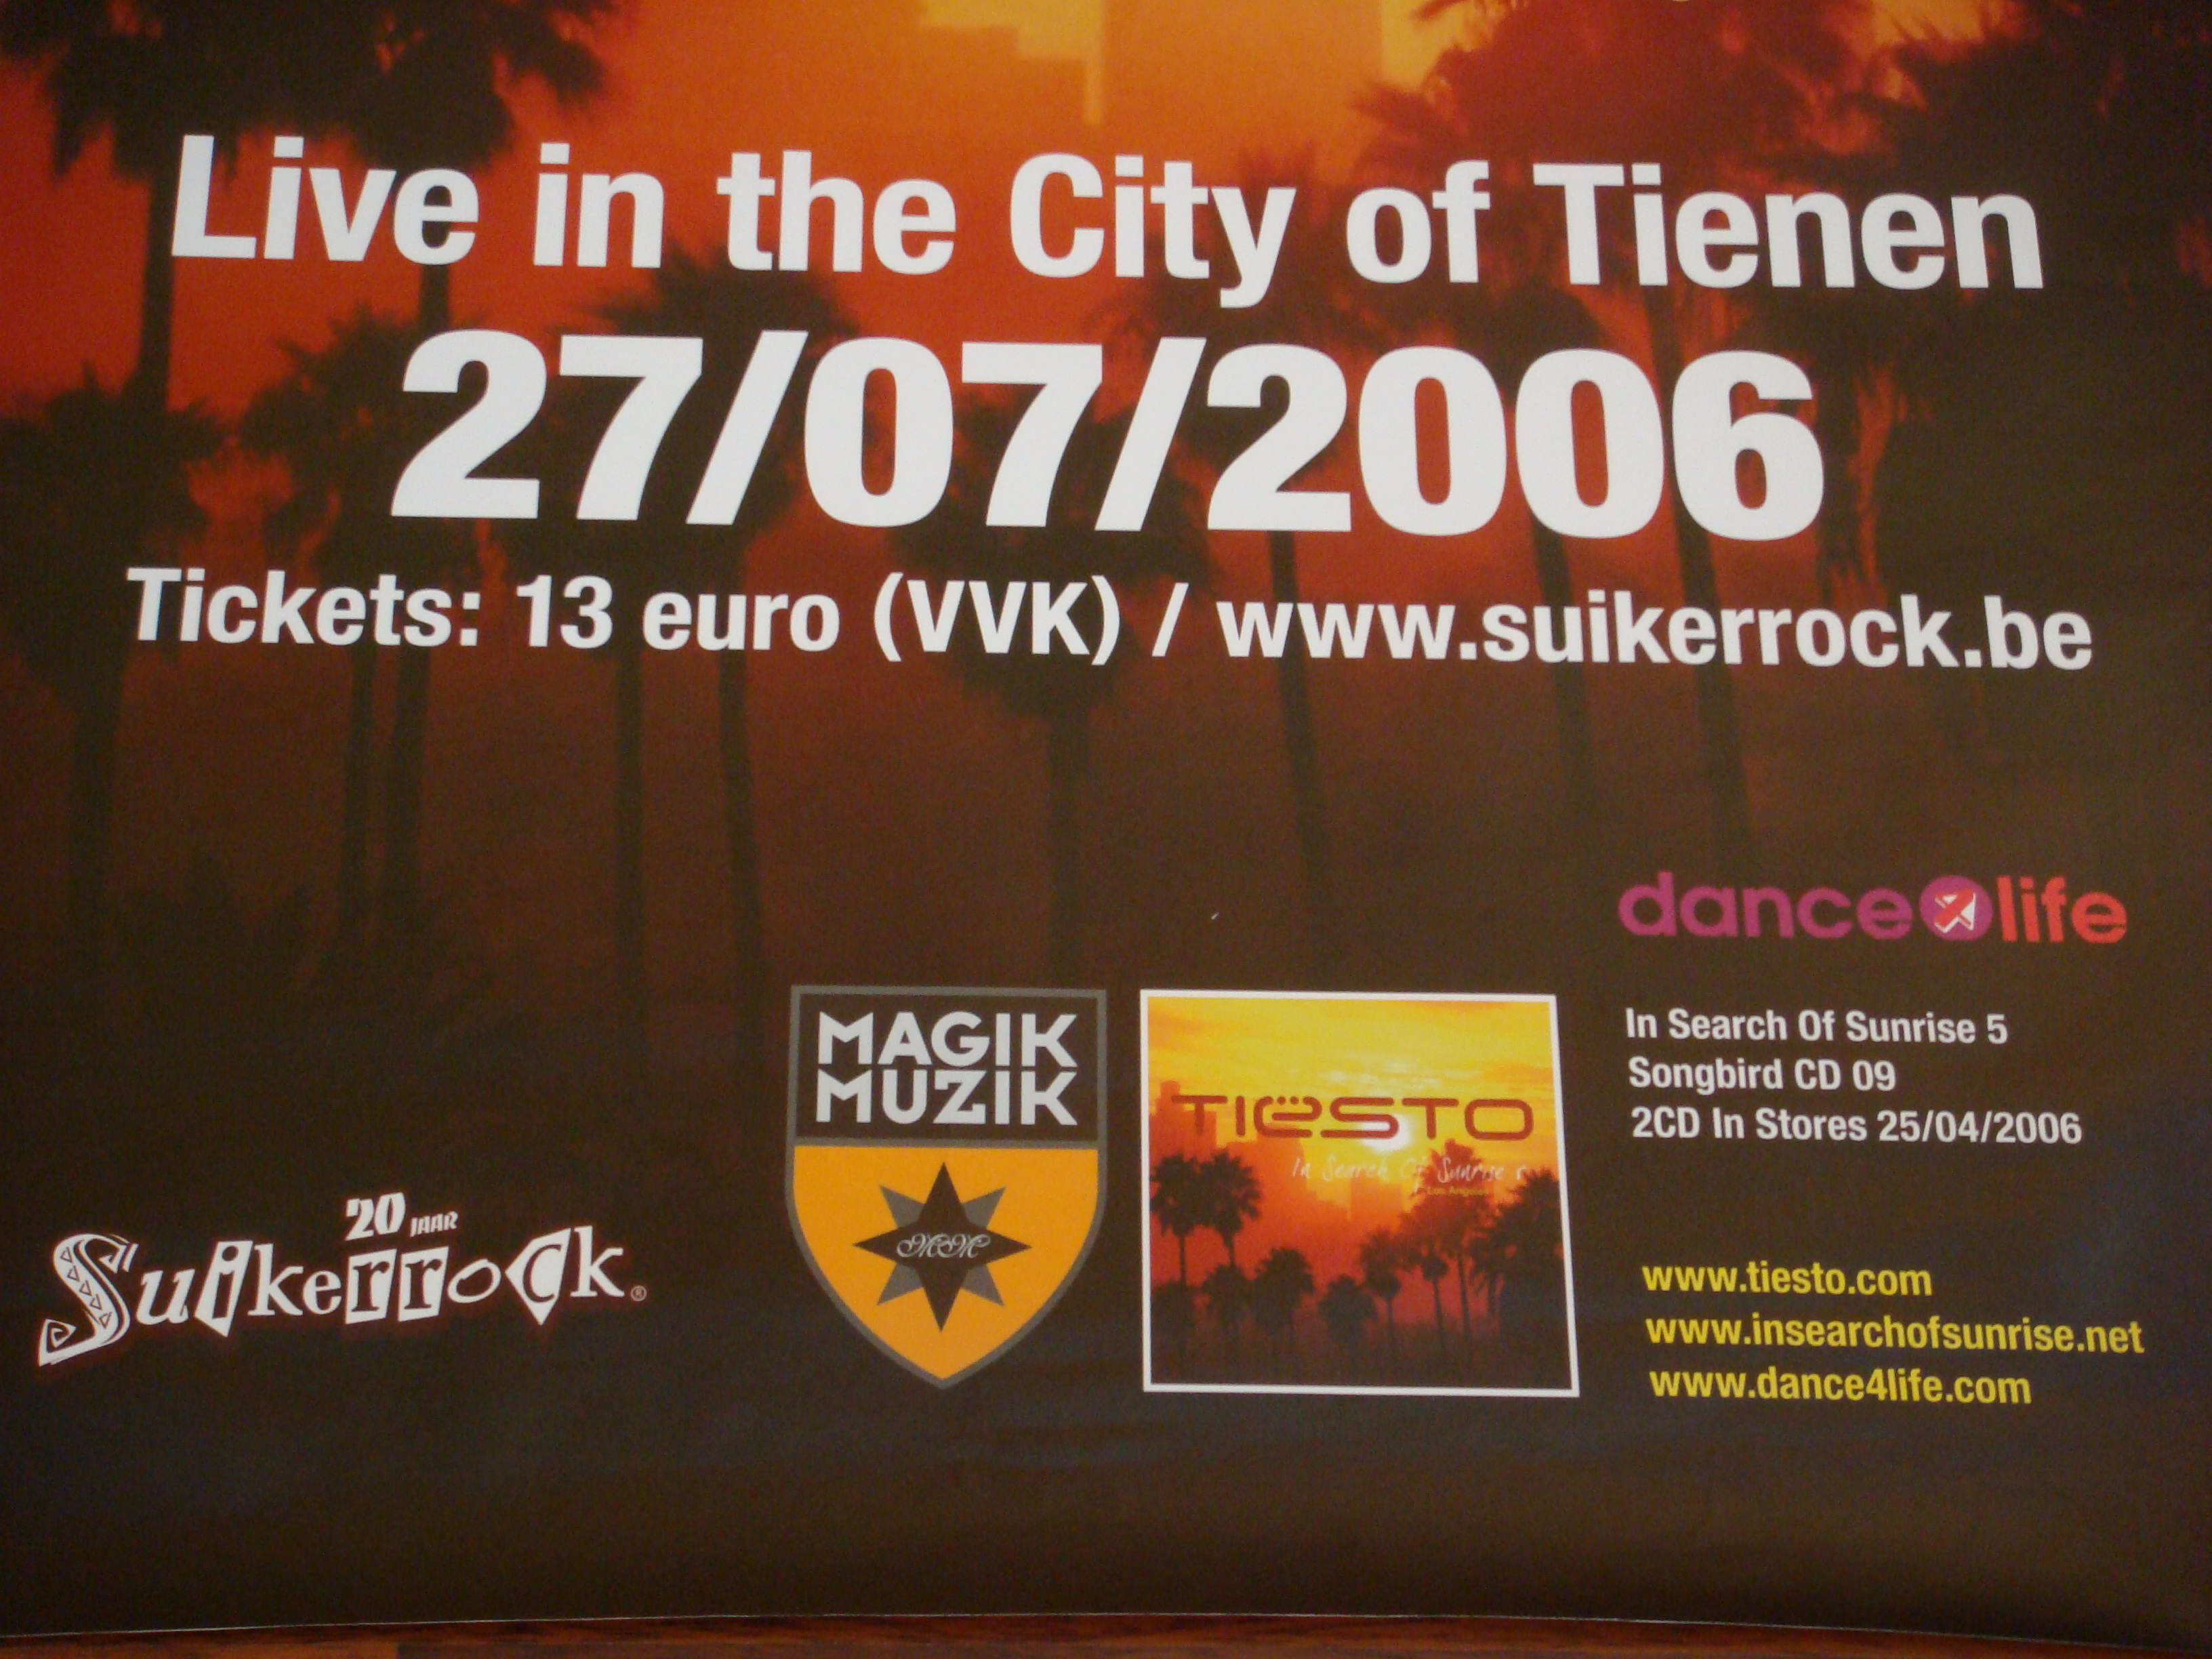 Dj Tiesto Live in Tienen 27 July 2006 Poster